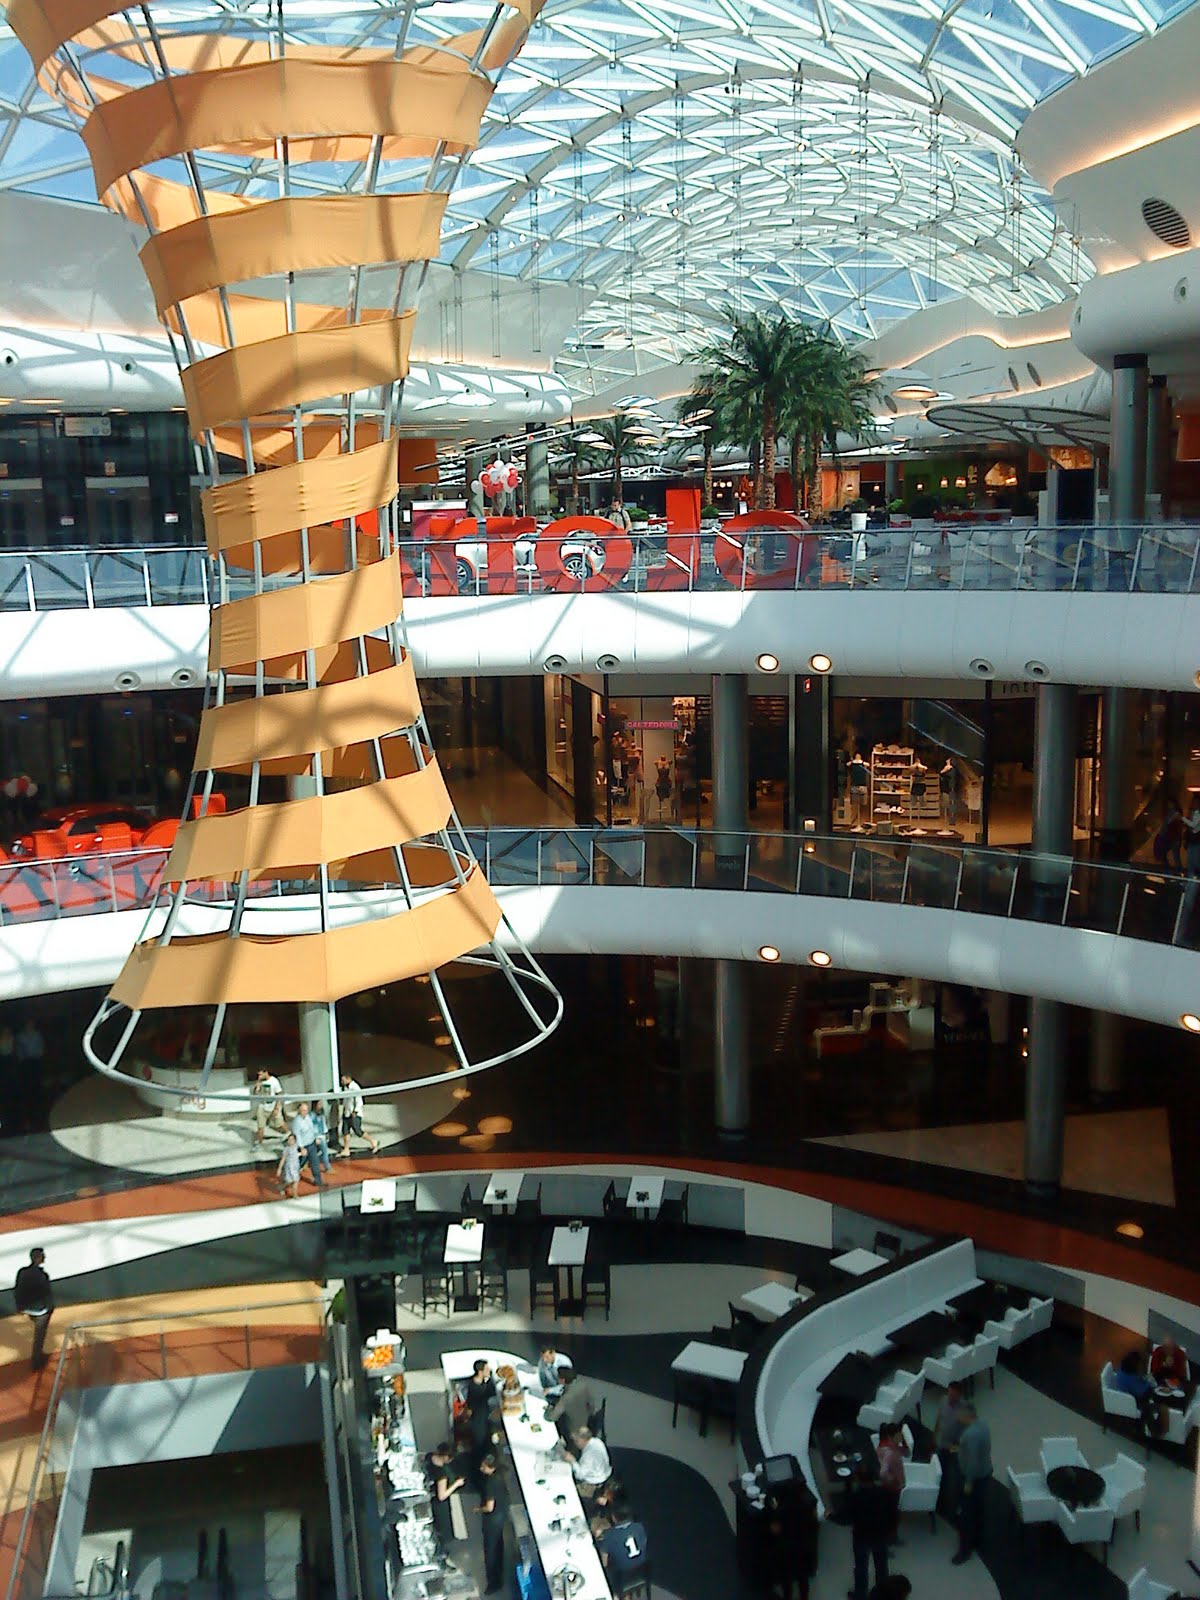 Shops malls and coffe shops around the world tiendas - Cinesa marineda a coruna ...